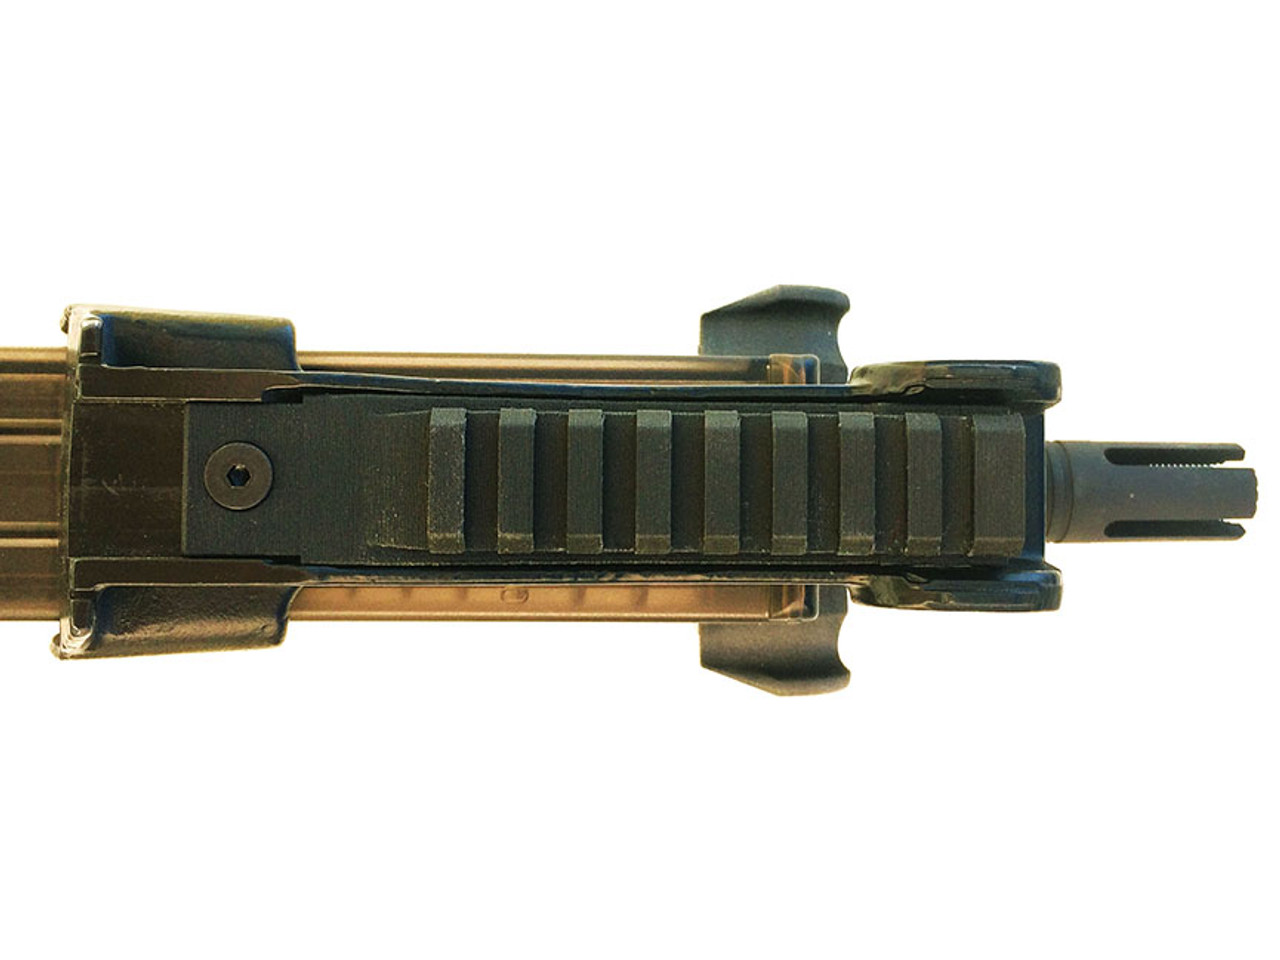 PS90 Low profile picatinny optic rail seen from above.